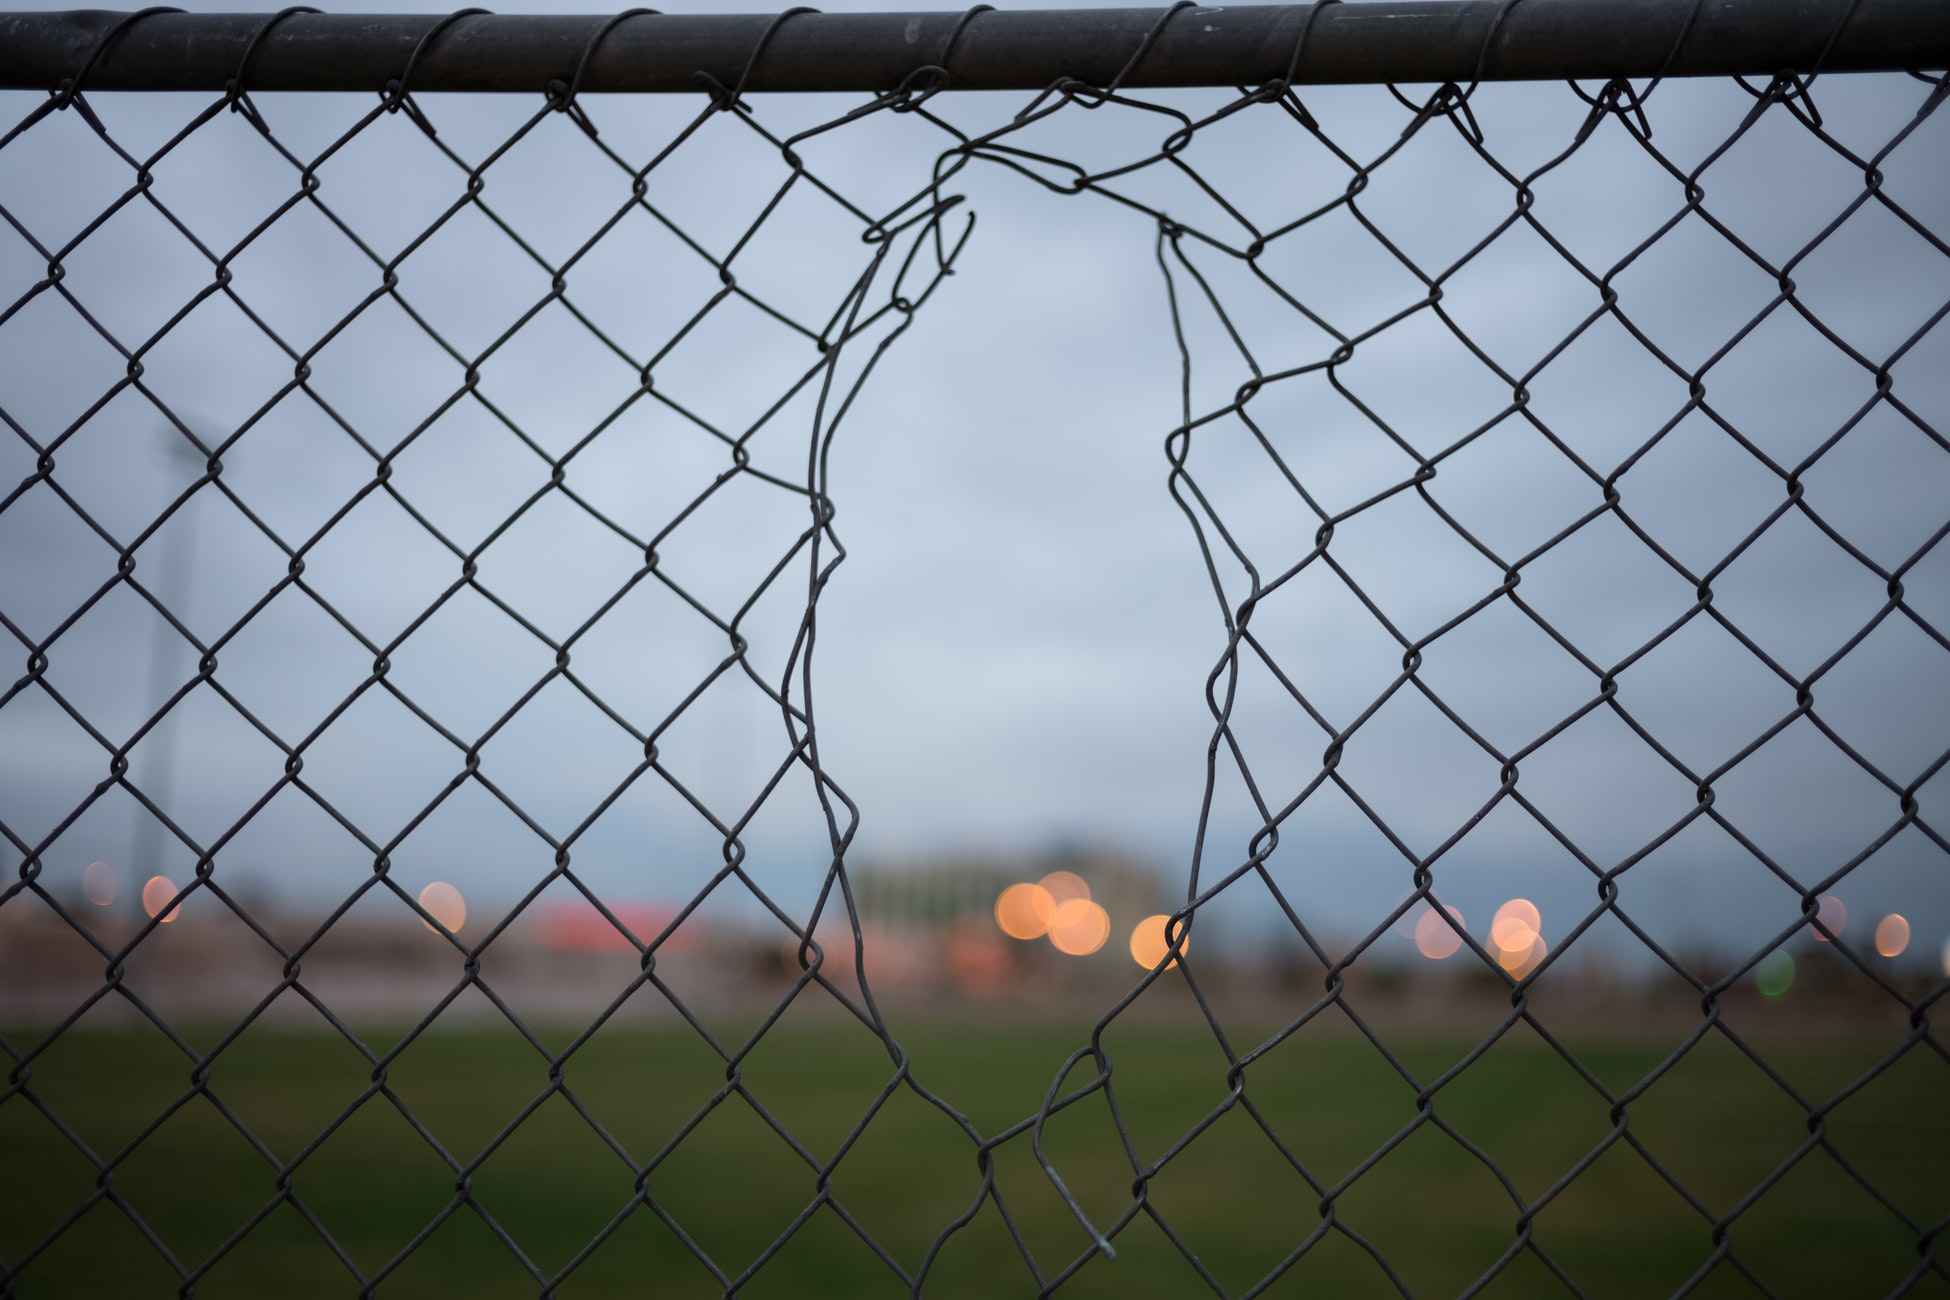 A broken chain link fence creates security vulnerabilities